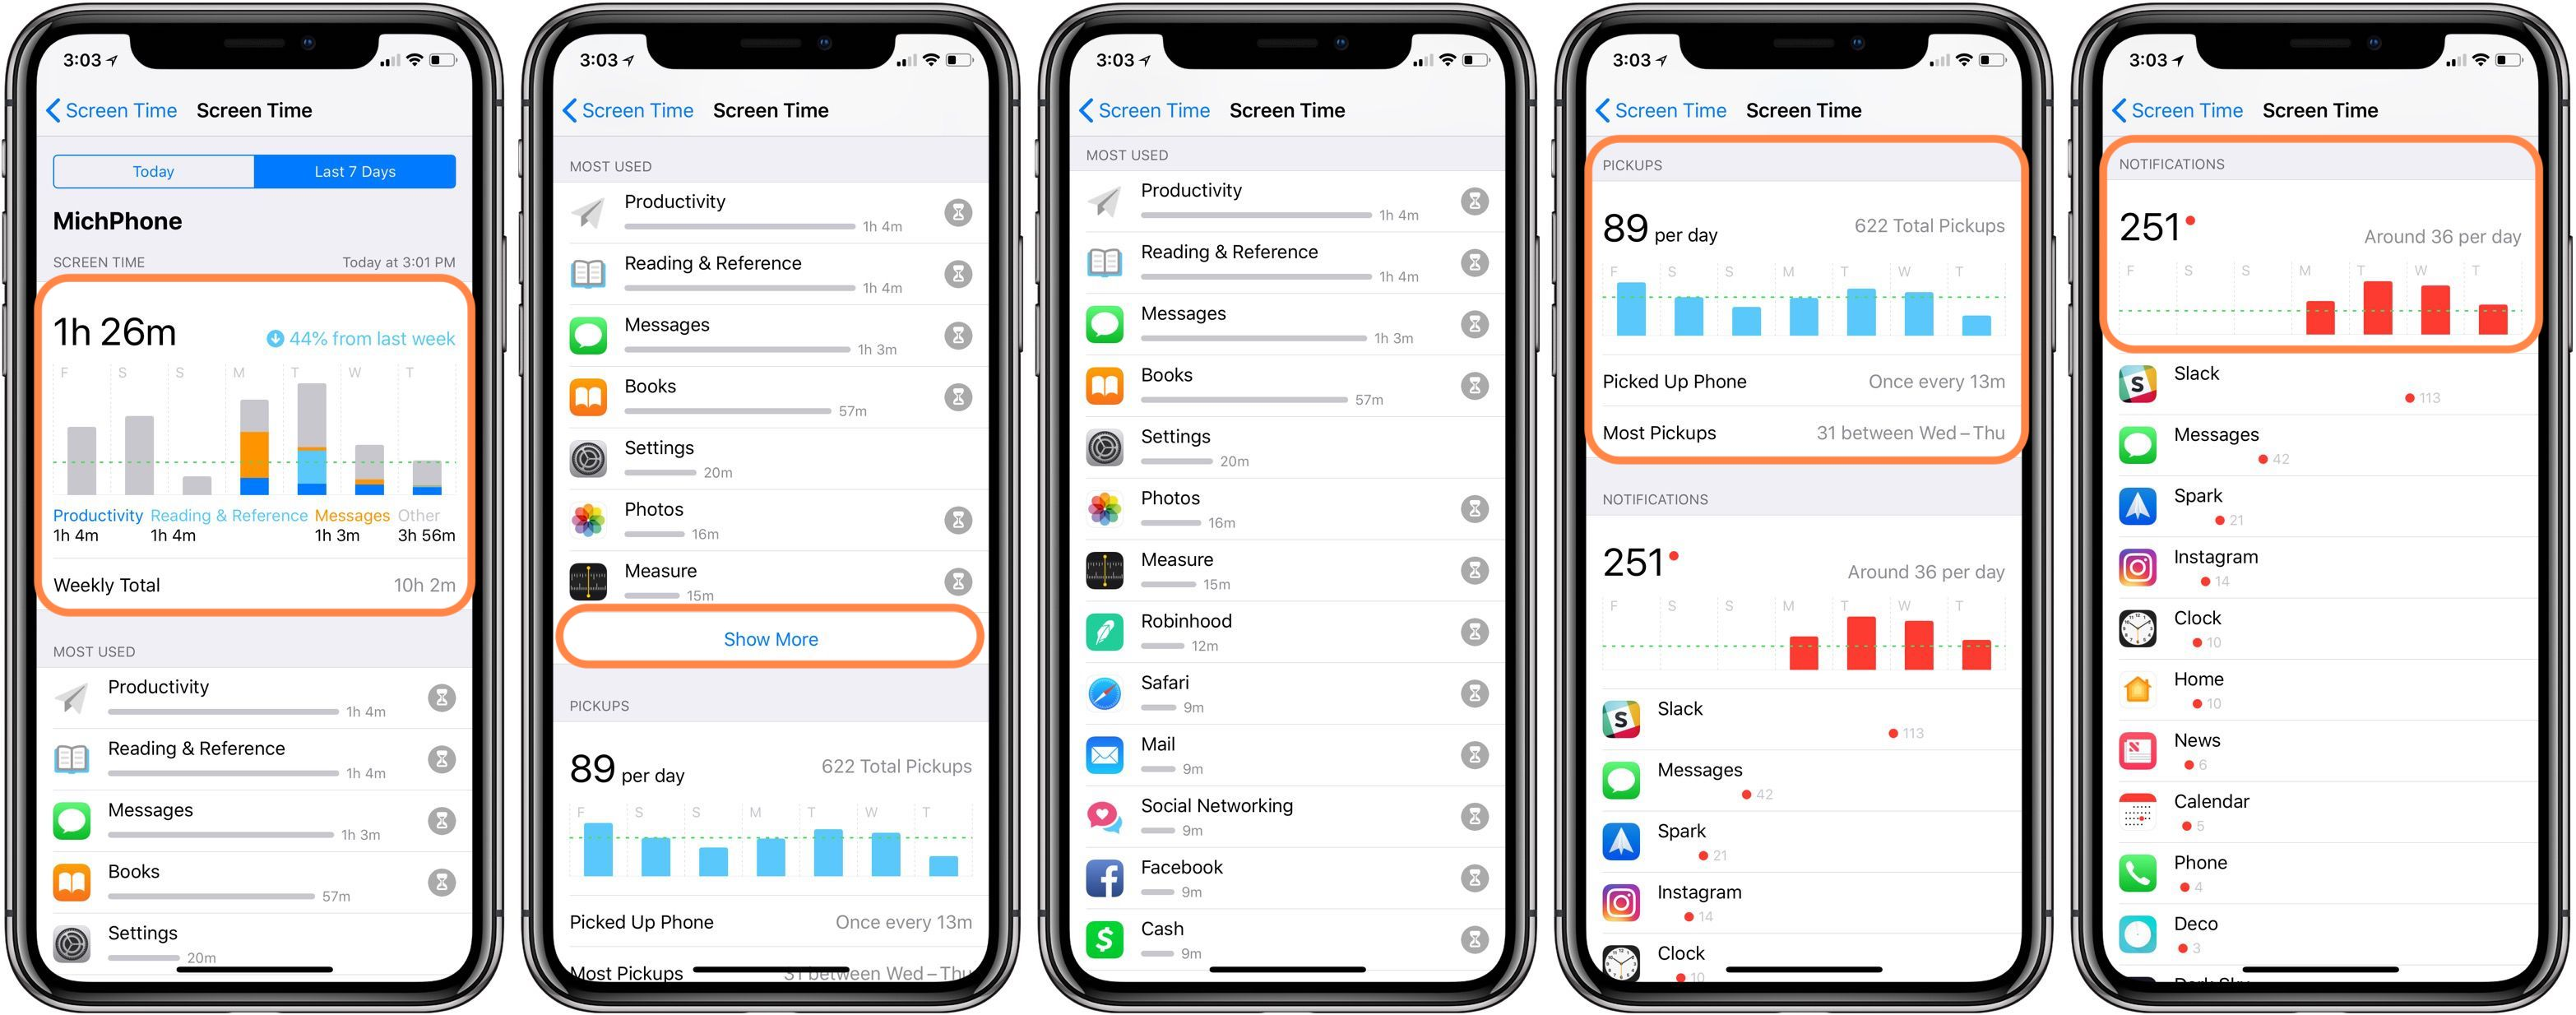 how to get the apps and data screen on iphone